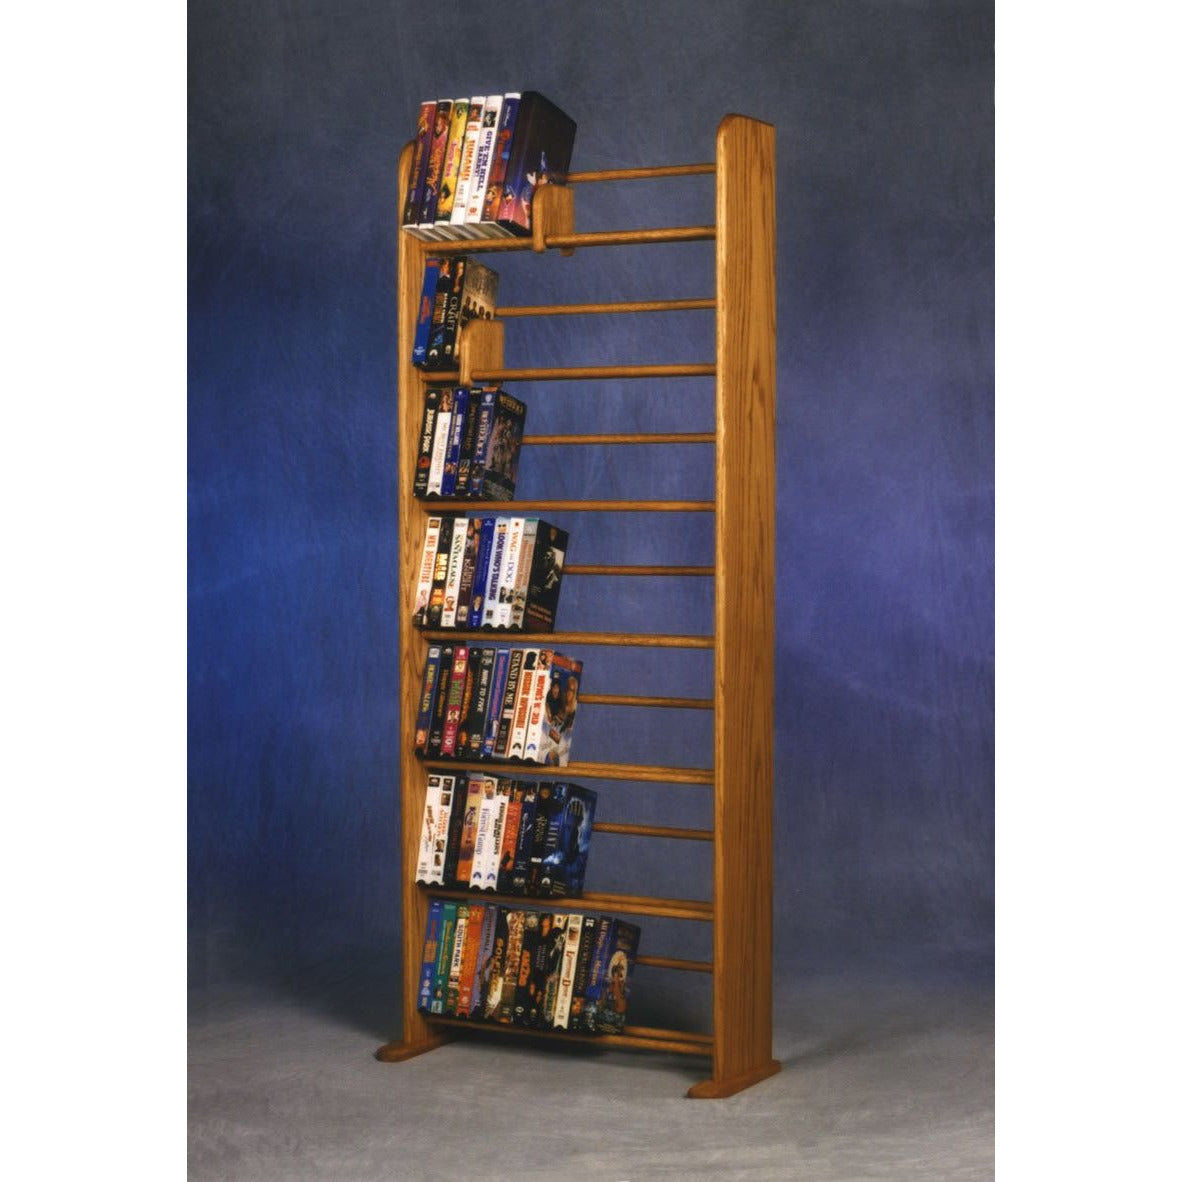 DVD storage rack - honey oak - holds 280 DVDs